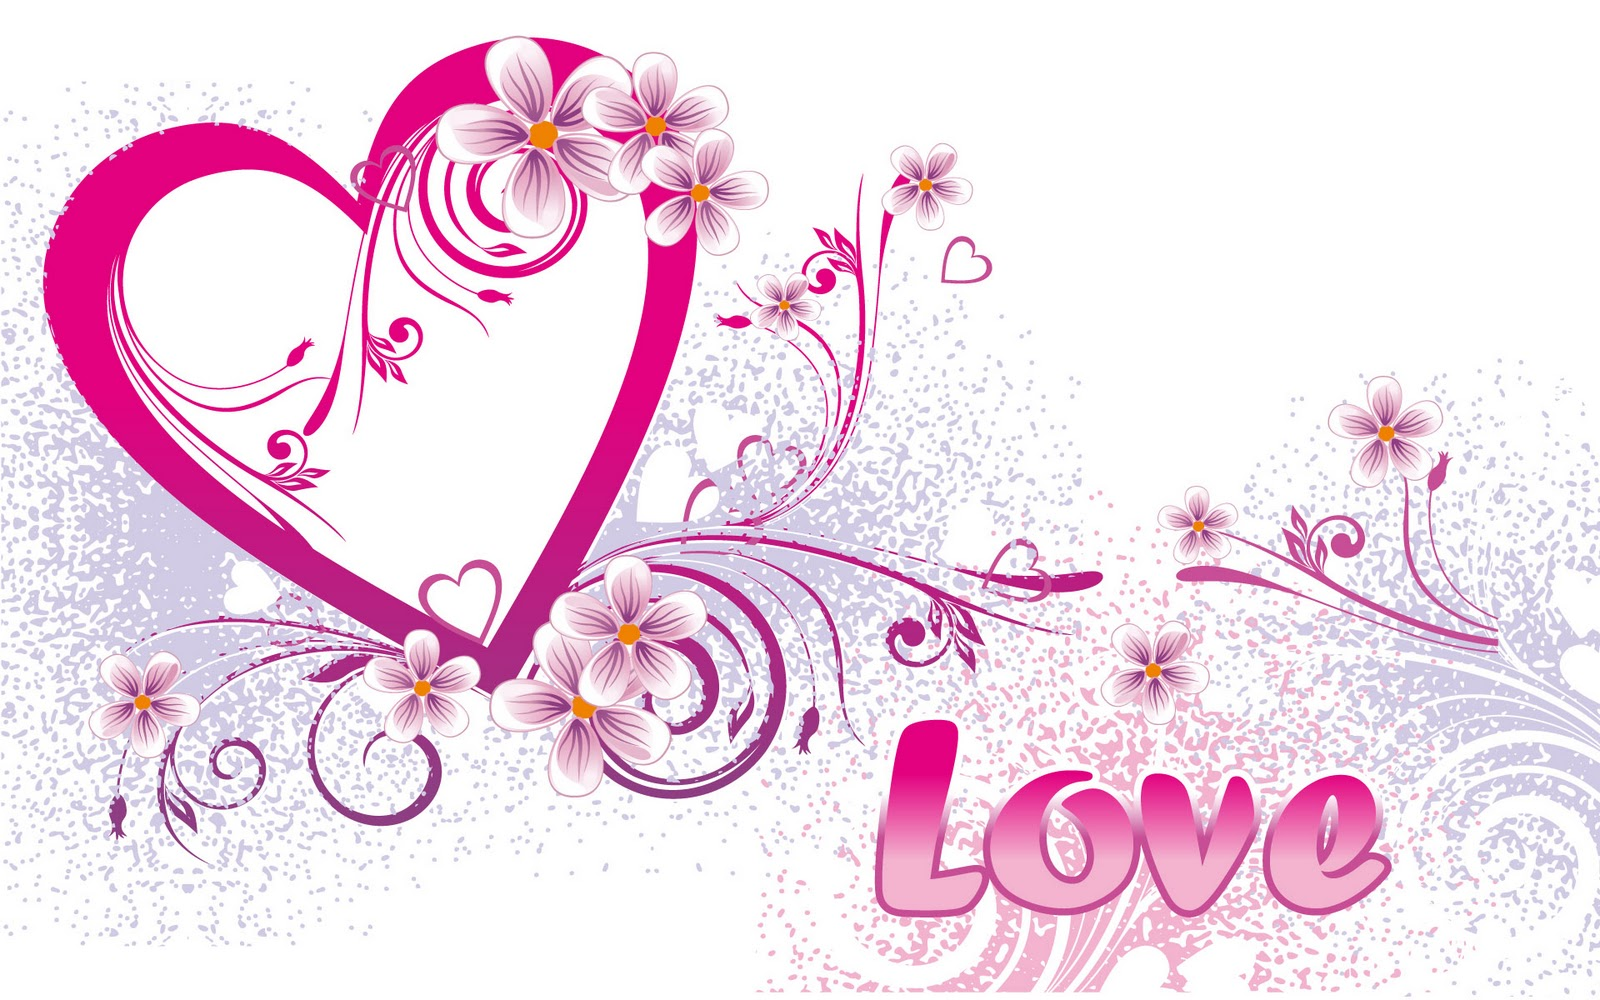 http://2.bp.blogspot.com/-UHcvoq2_LH4/UB6upuzUg5I/AAAAAAAAAPA/sXJPJ0ALWD8/s1600/windows-valentines-day-desktop-wallpaper-backgroud-free.jpg